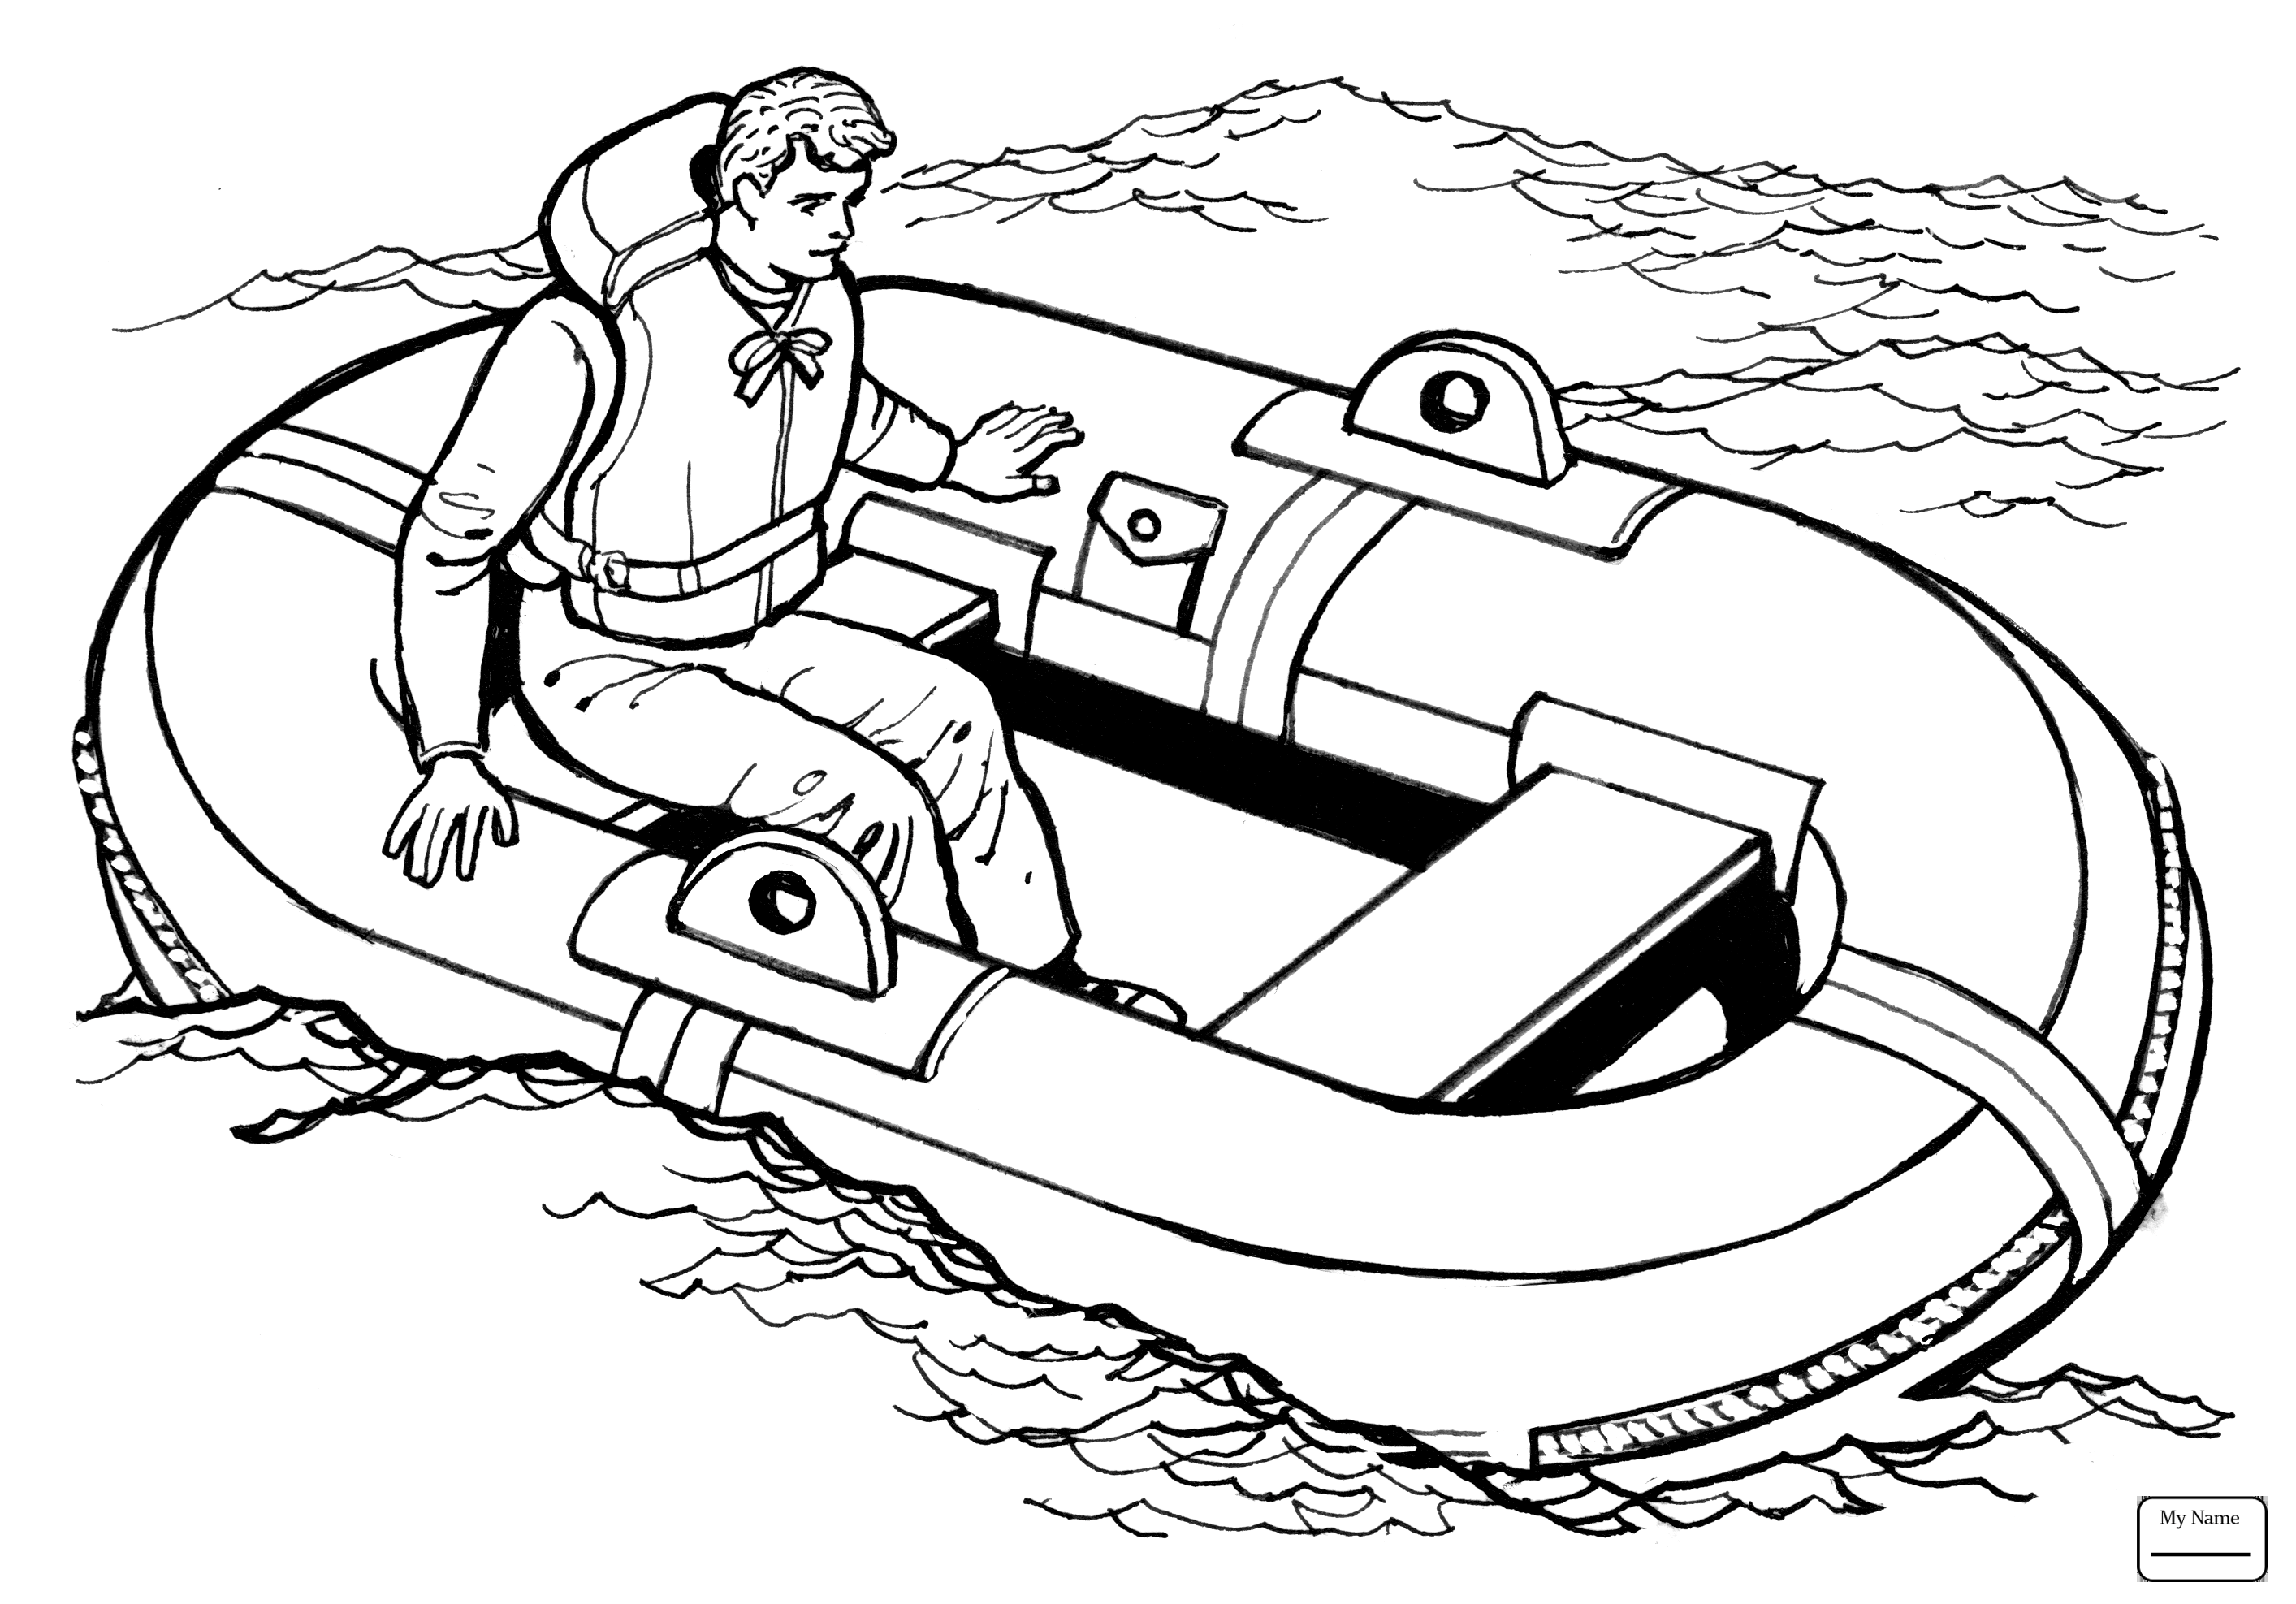 Boats And Ships Drawing at GetDrawings.com | Free for personal use ...